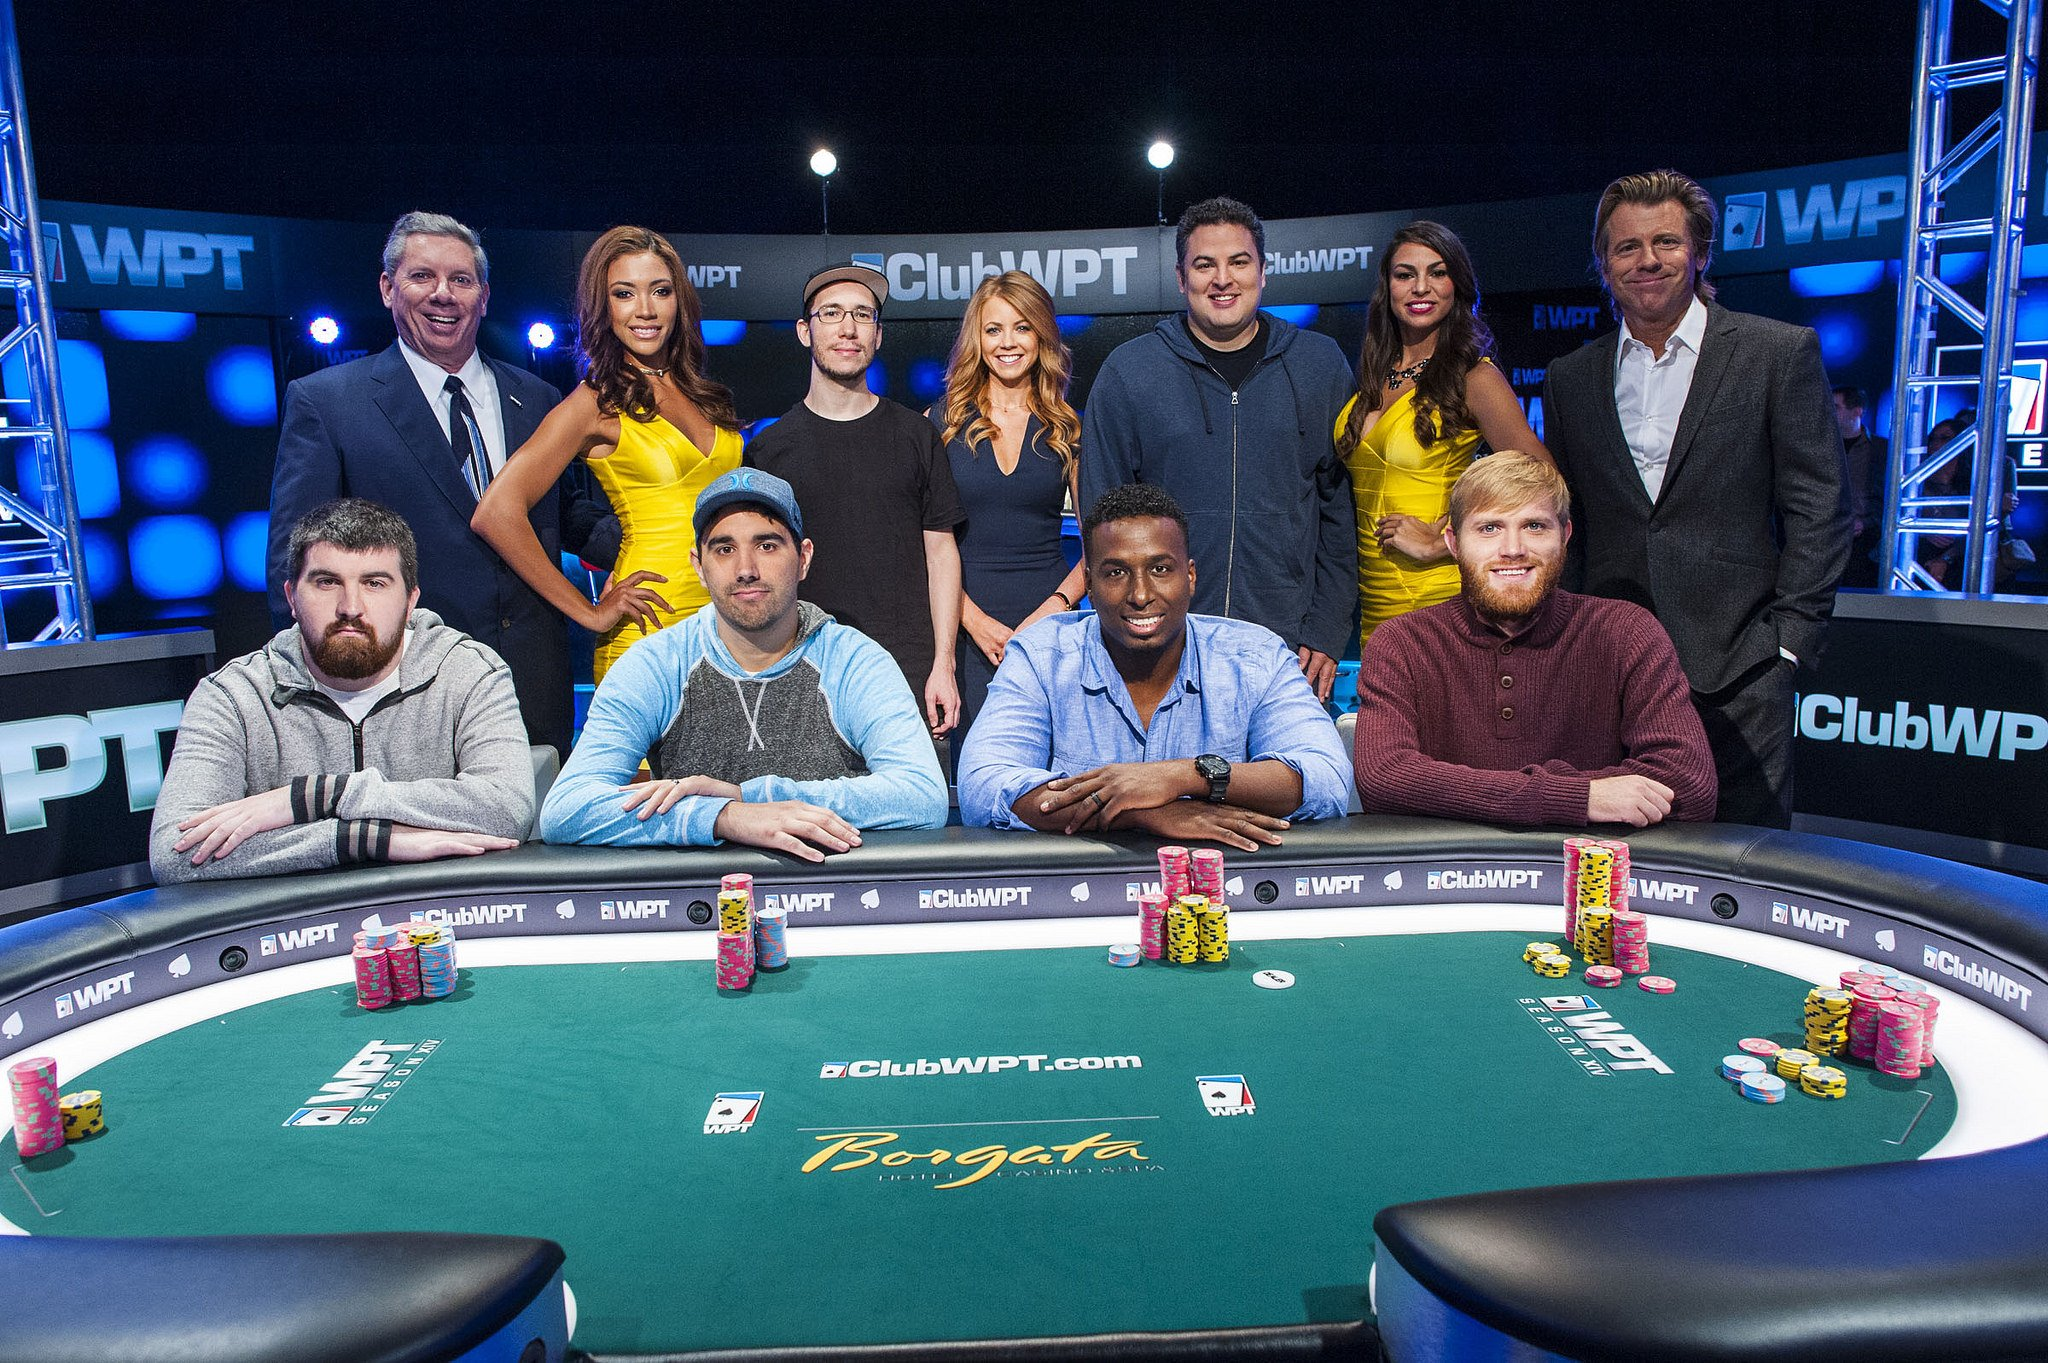 World Poker Tour Borgata Poker Open Part 2 Tv Episode 2016 Imdb